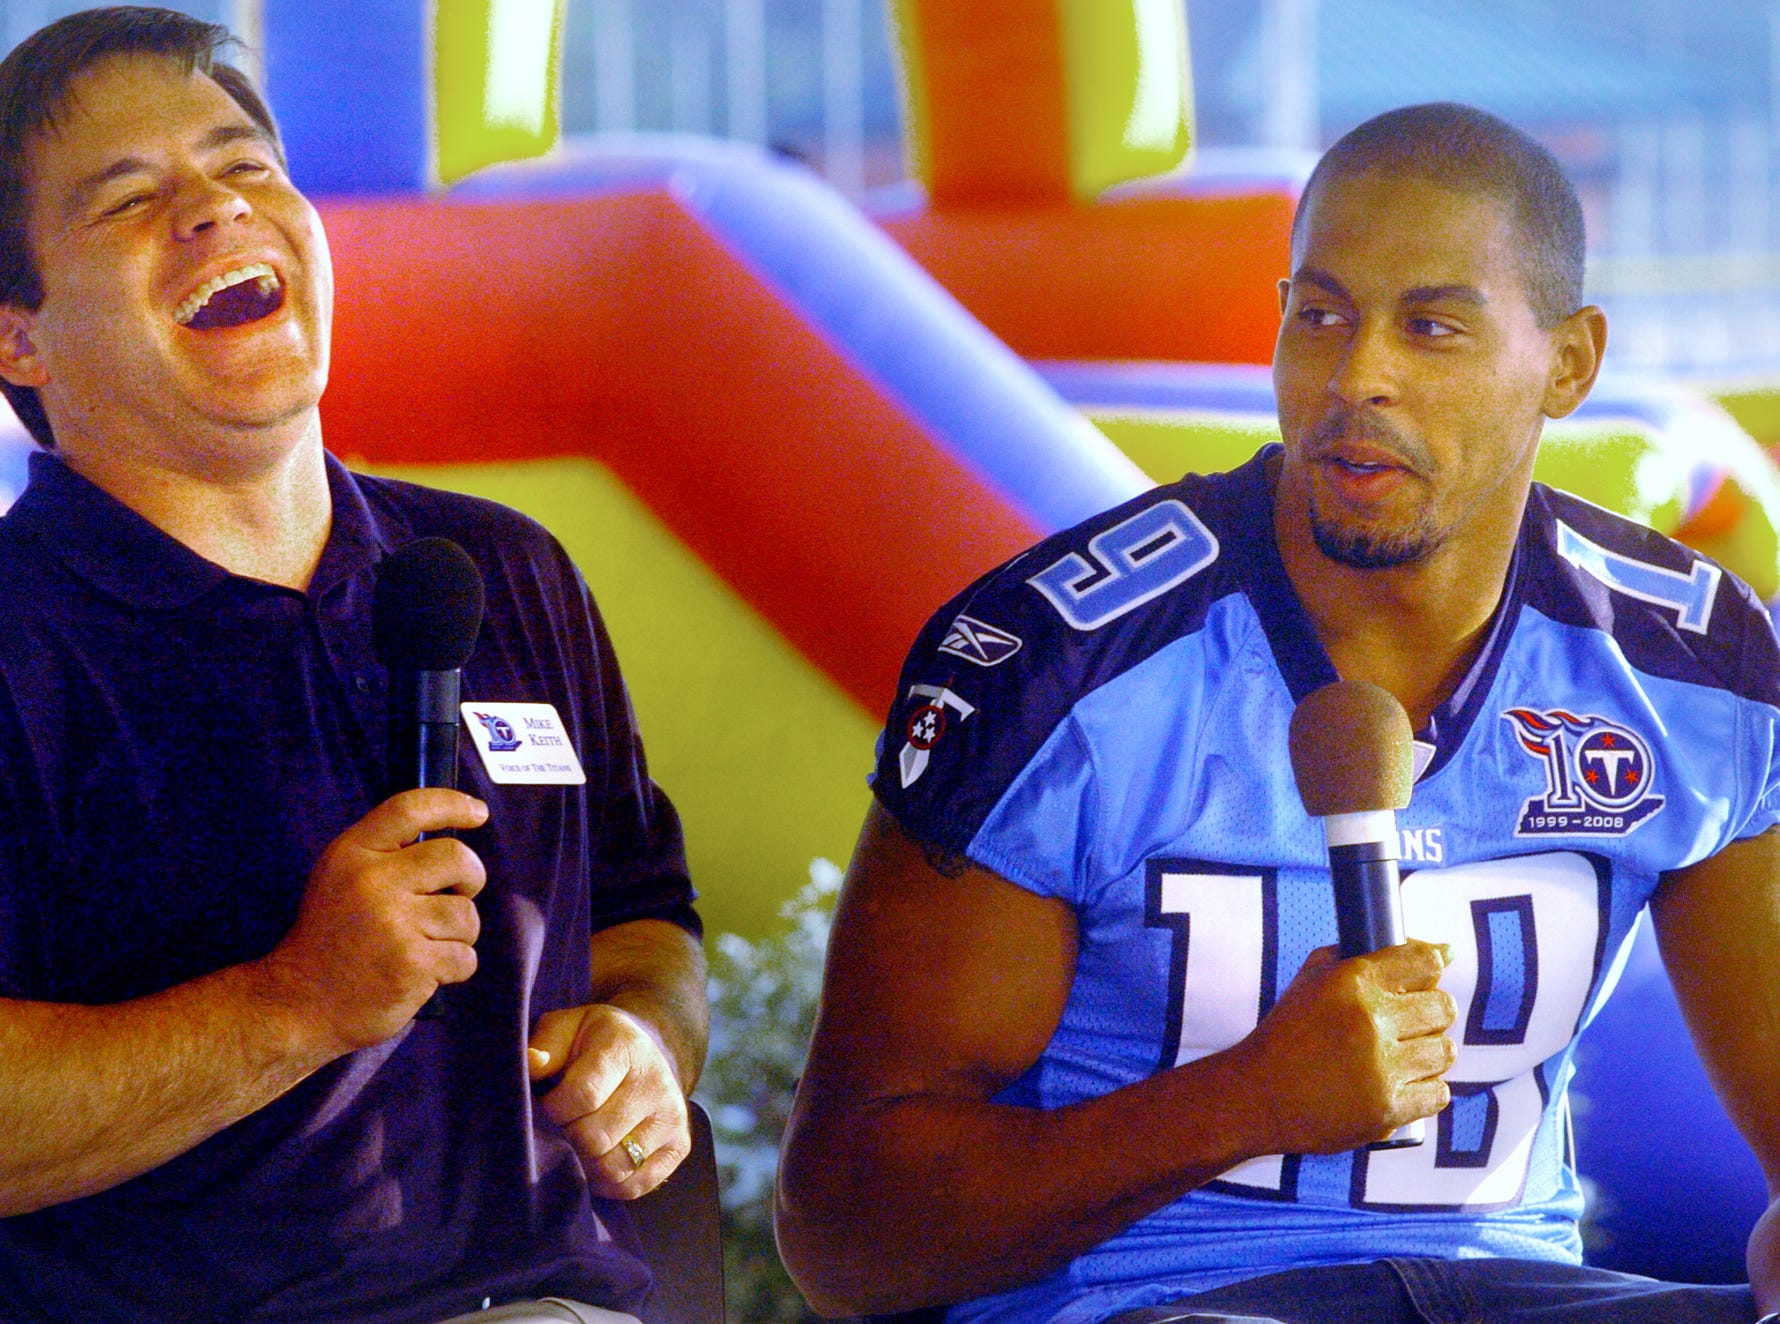 The voice of the Tennessee Titans, Mike Keith, left, and Titans wide receiver, Justin McCareins, right, laugh during a television interview at the Tennessee Titans Caravan at the West Tennessee Healthcare Sportsplex in Jackson in 2008.